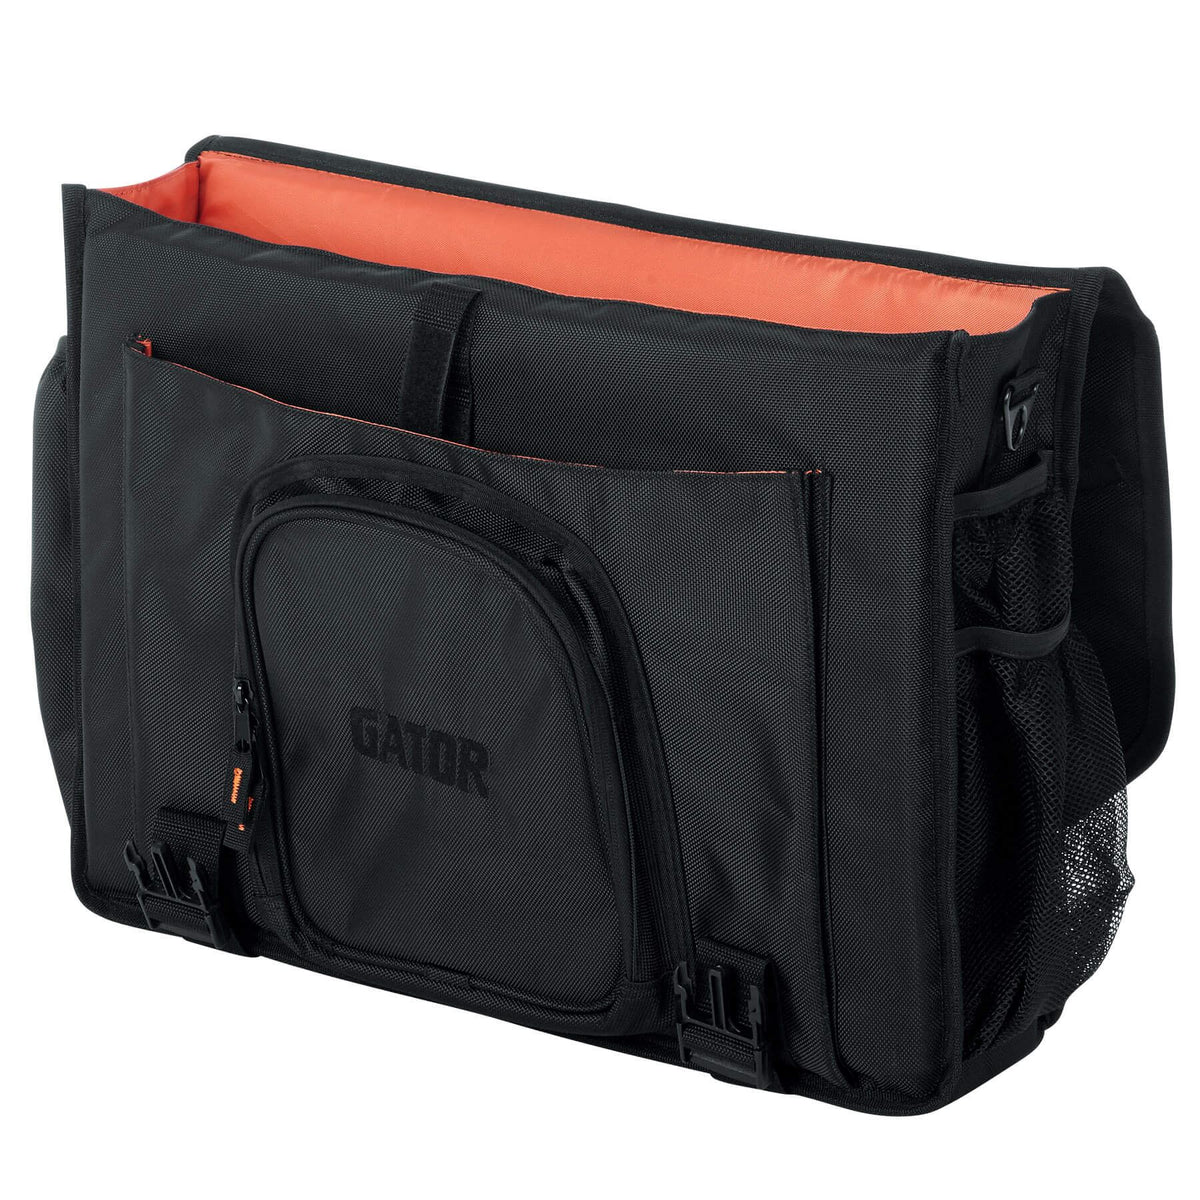 "Gator Cases 19"" Messenger Bag  for Digitech Live 4, Live 5, VL4"